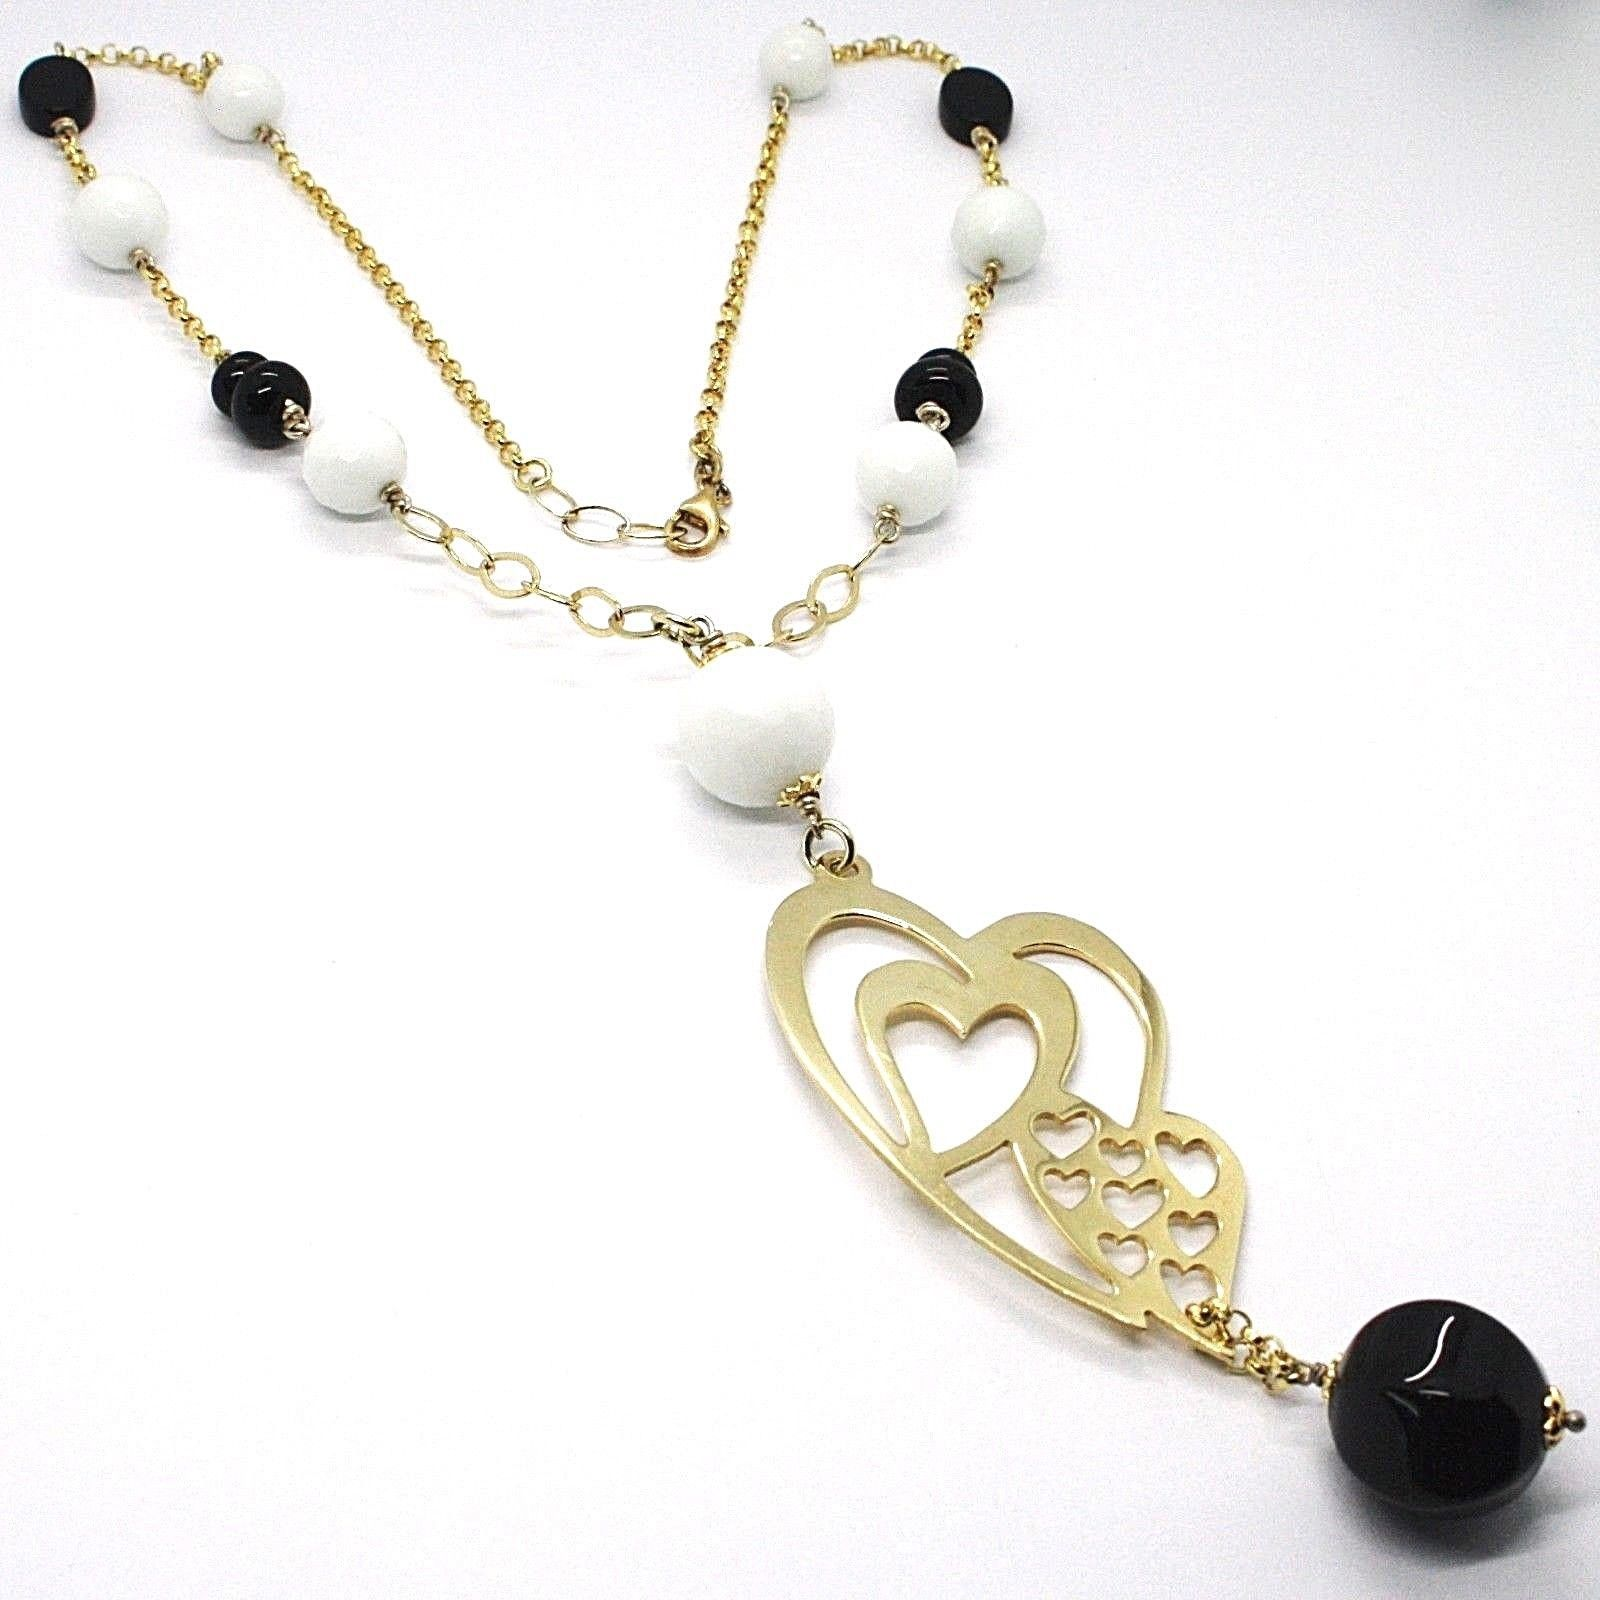 Silver necklace 925, Yellow, Onyx, White Agate, Double Heart Pendant